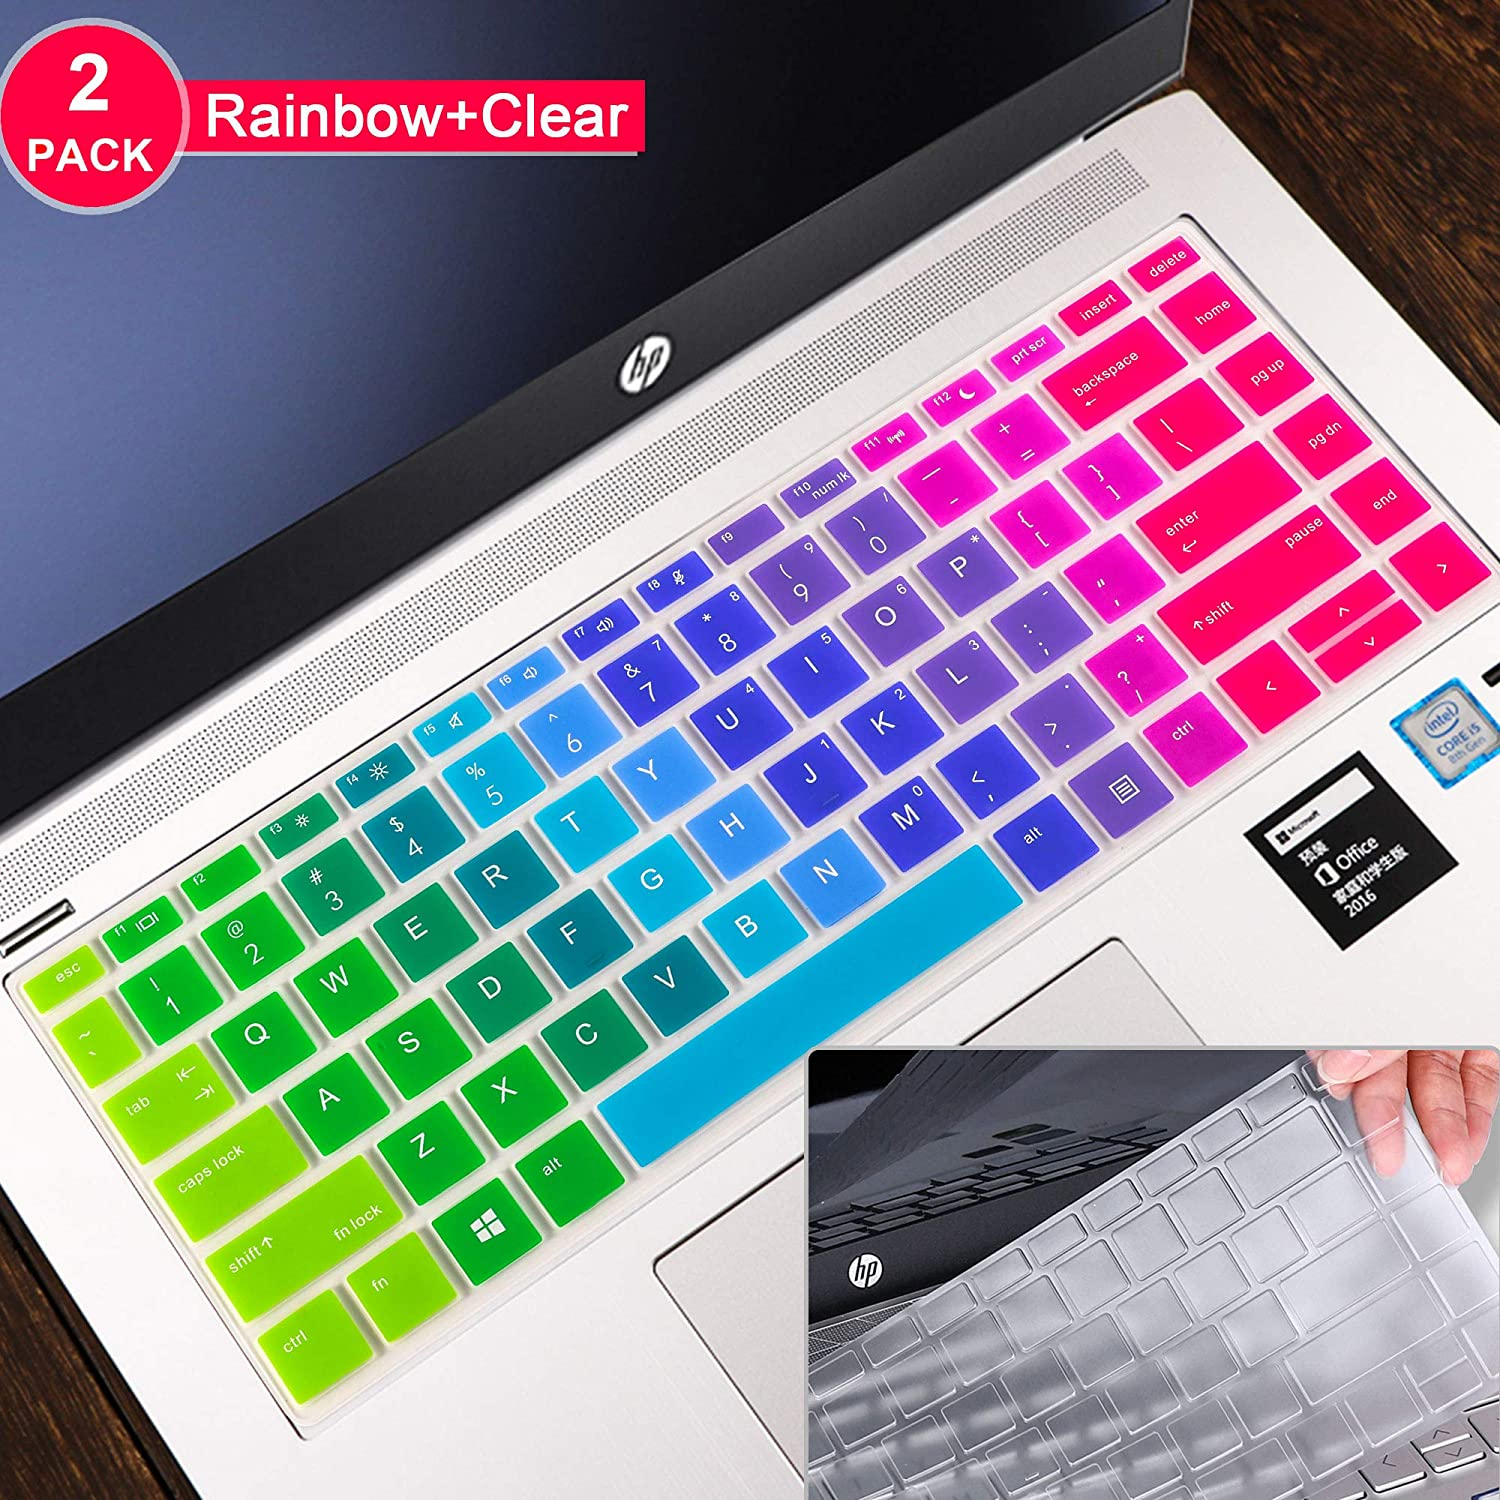 [2pcs] Lapogy Keyboard Cover Skin for ProBook 640 G4/440 G5/440 G6/445 G6,hp probook Keyboard Cover 14 inch,Ultra Thin Silicone Keyboard Protective Cover(Rainbow+Clear)